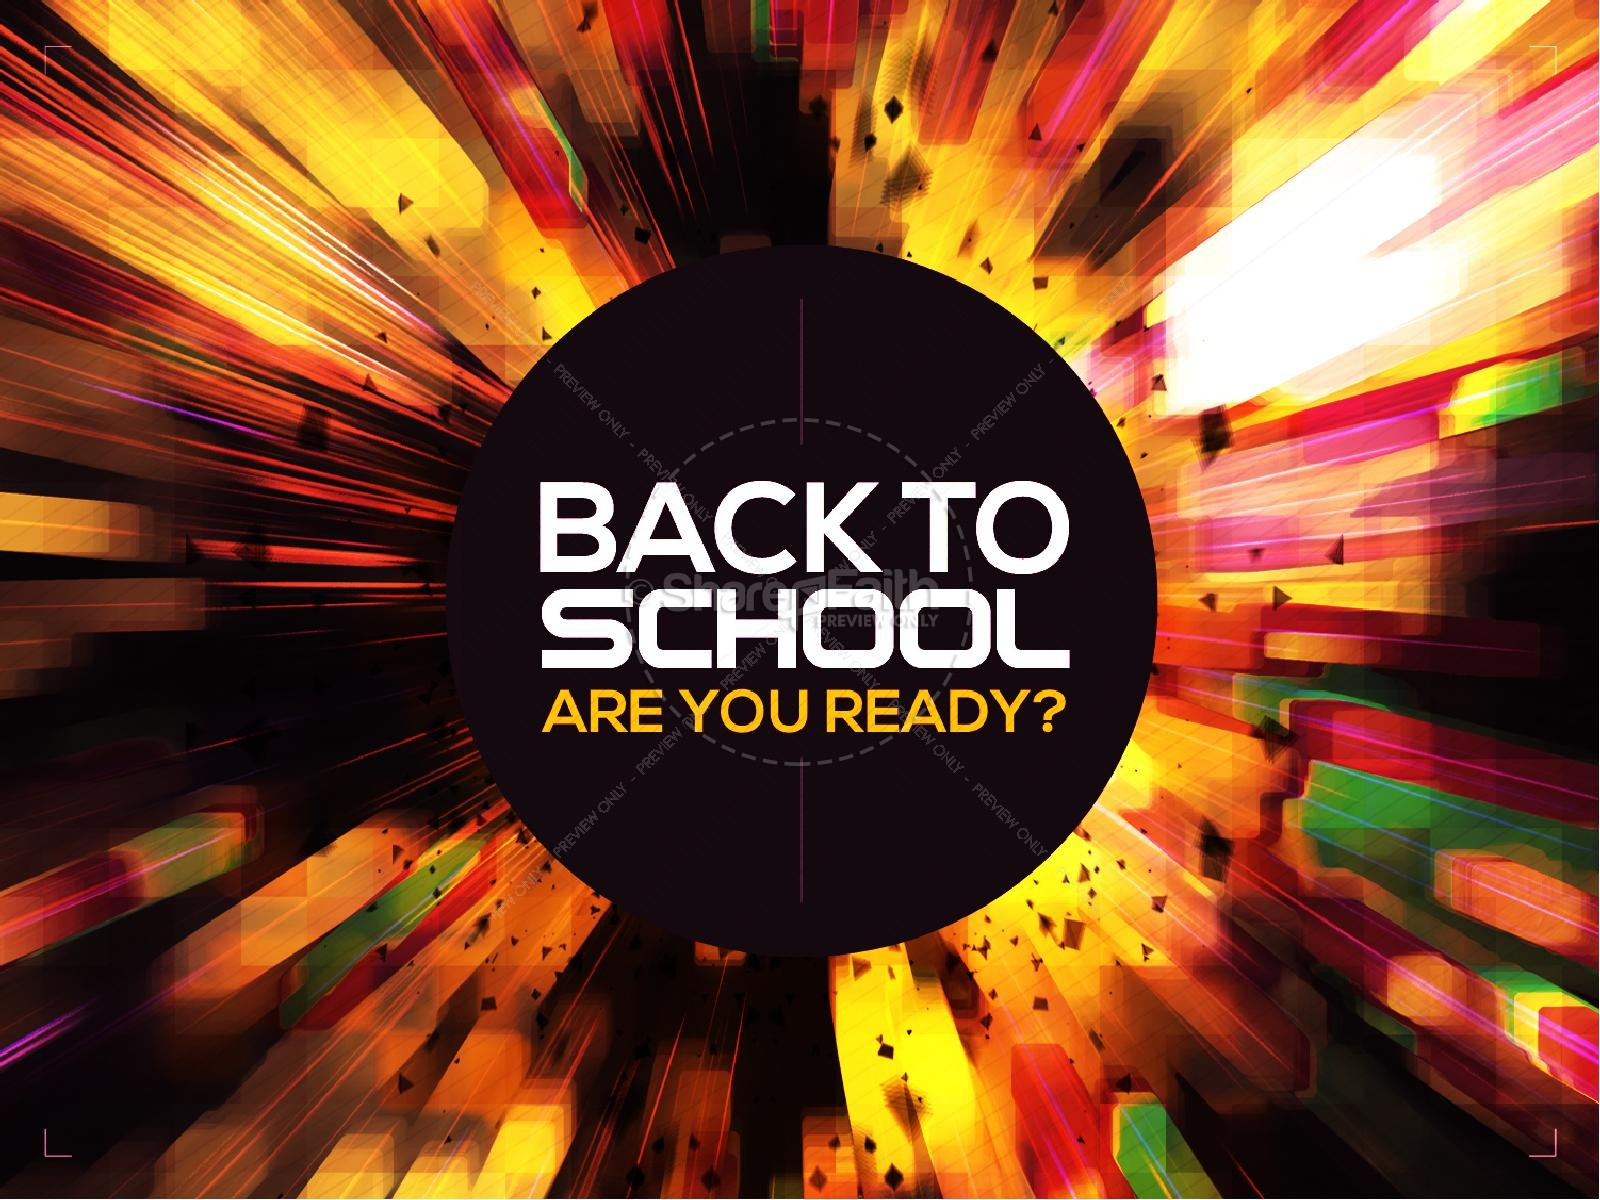 back to school power christian powerpoint template back to school